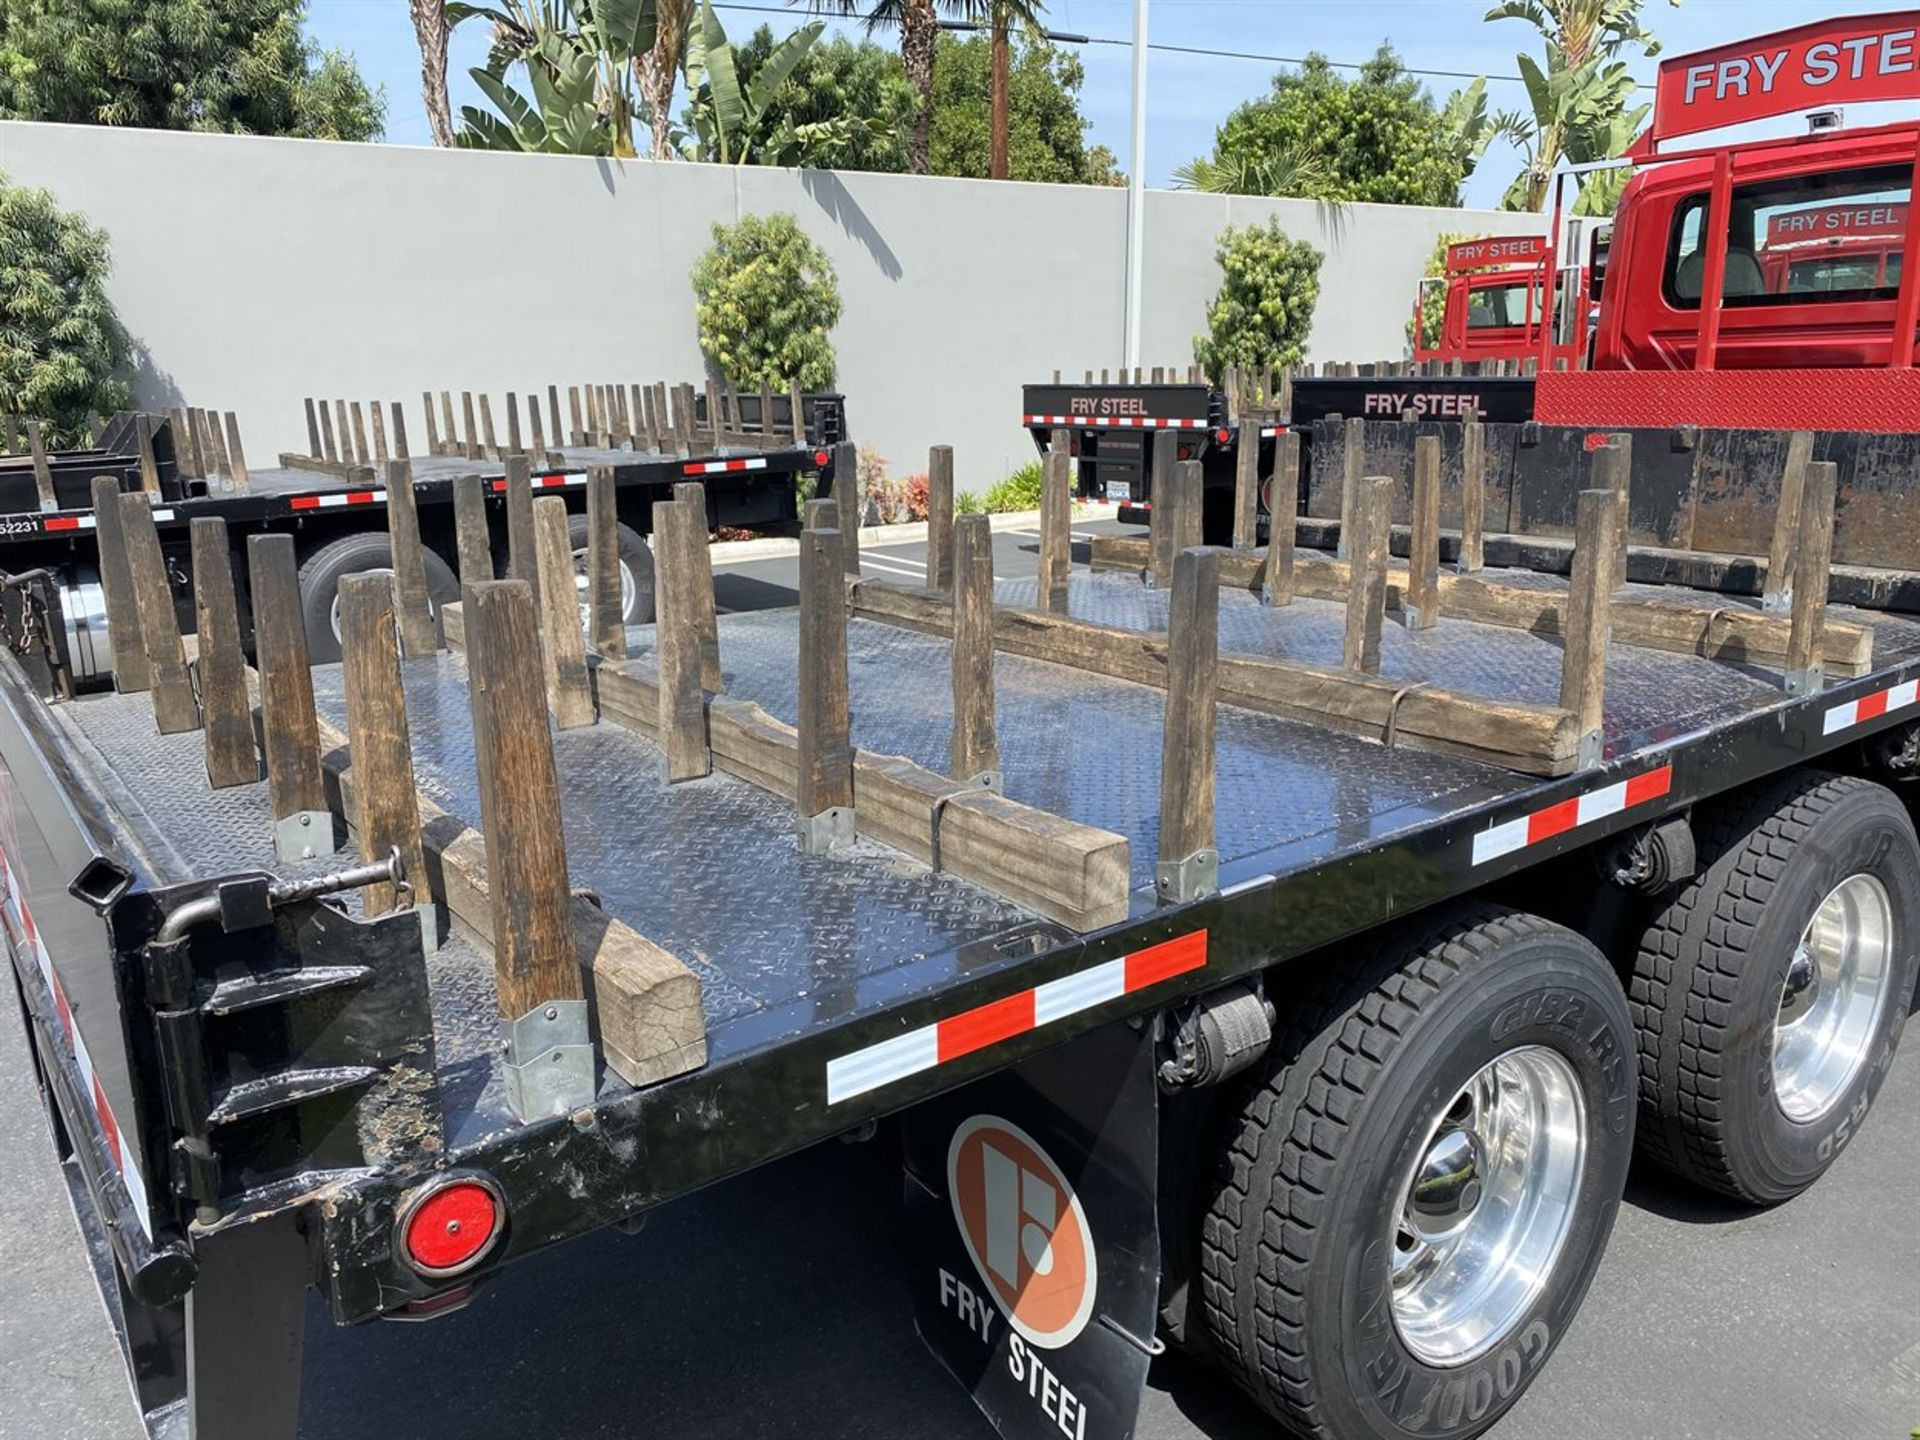 2016 INTERNATIONAL 18' Stake Bed Truck, VIN 1HTHXSNR4GH132503, 129,562 Miles at time of inspection - Image 7 of 21